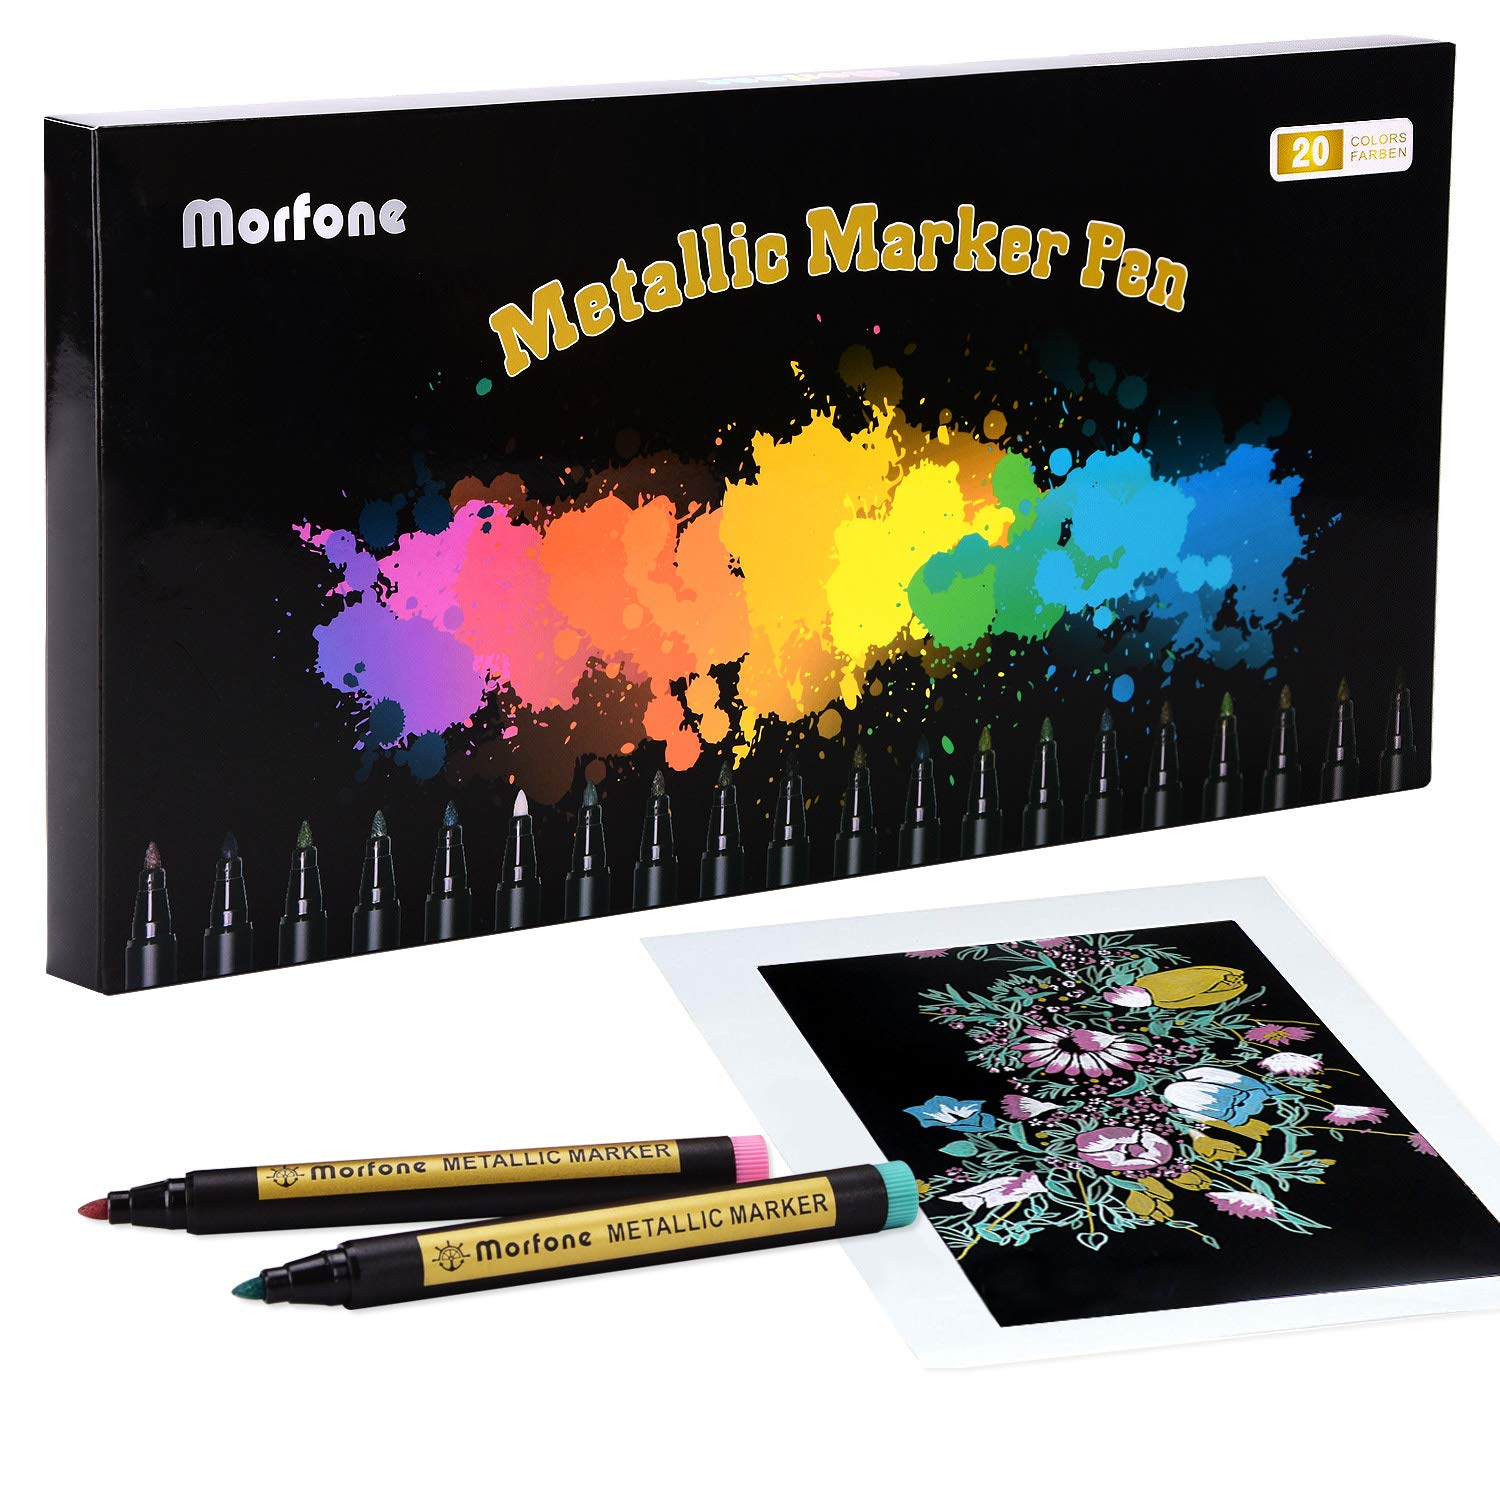 Metallic Markers, Morfone 20 Color Paint Marker Pens for Card Making, Rock Painting, Coloring, Scrapbooking, Ceramic, Glass, Wood, Metal, School Project, Art, Craft (Medium tip 2mm)